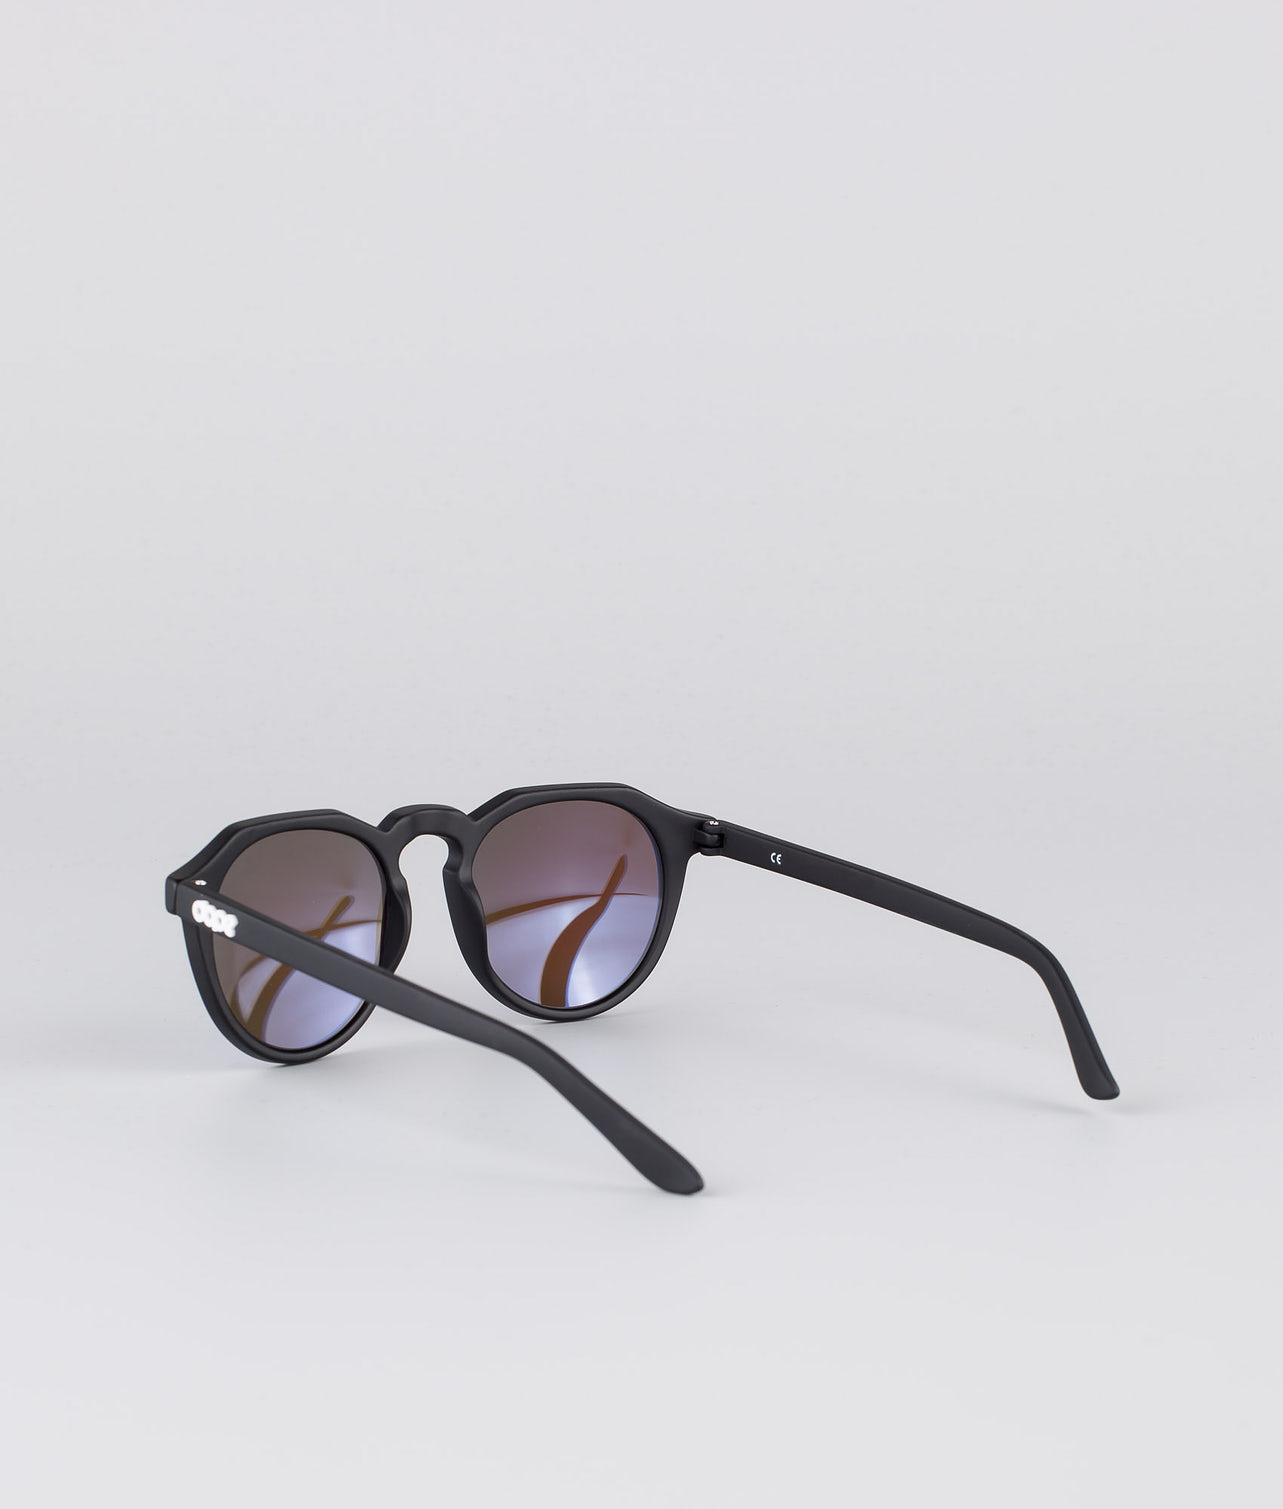 Buy Oldskool III Sunglasses from Dope at Ridestore.com - Always free shipping, free returns and 30 days money back guarantee